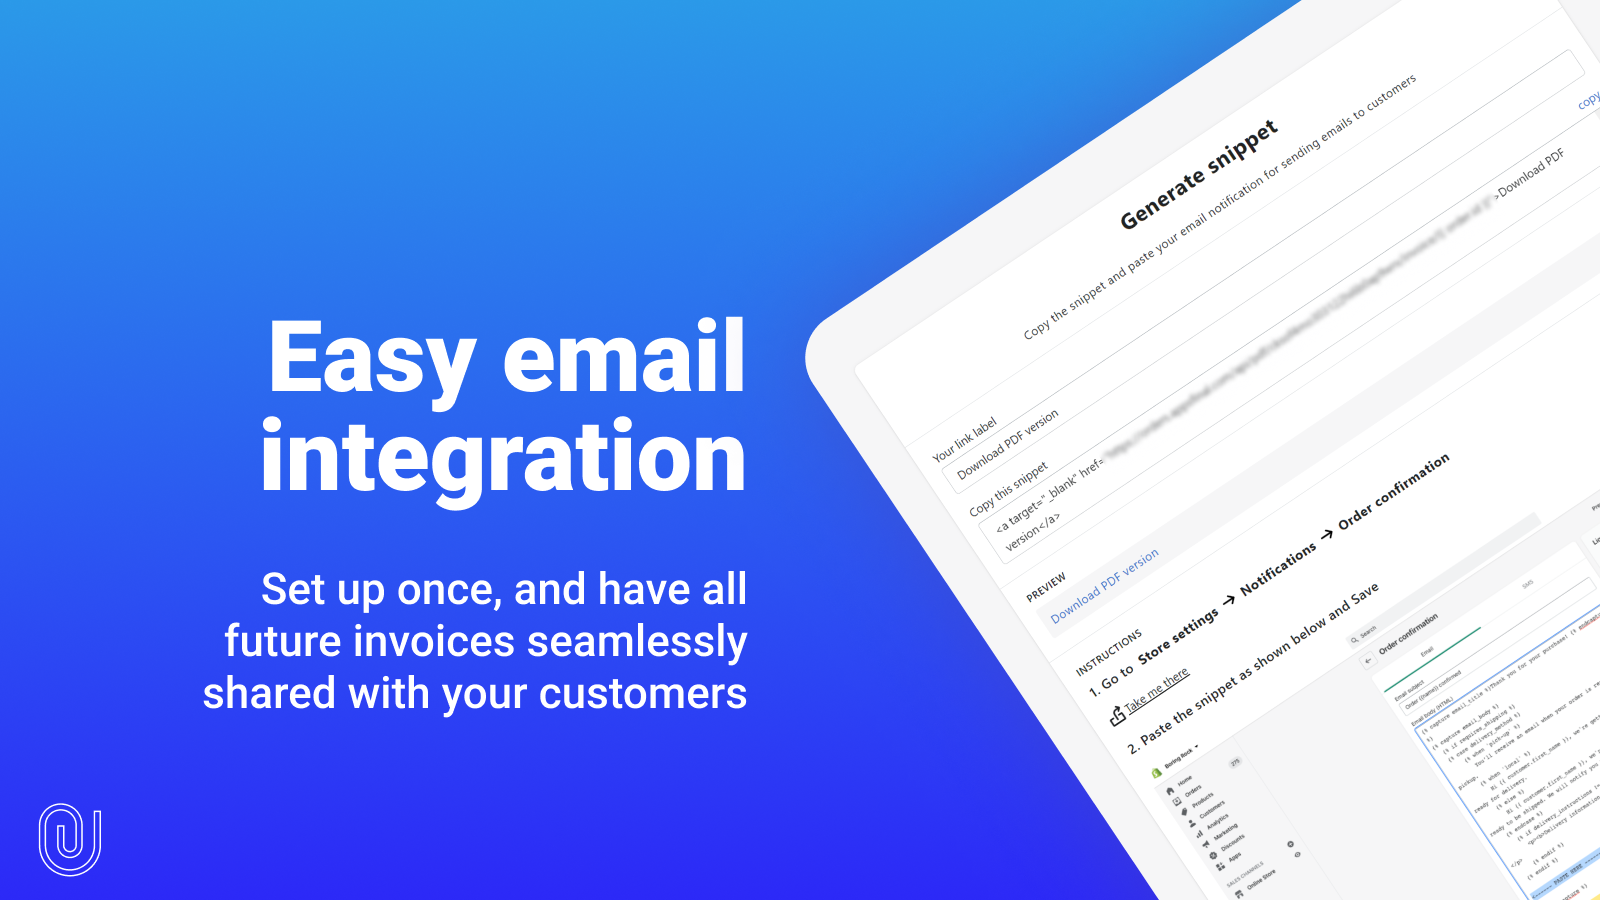 Integrate easily with Shopify customer emails